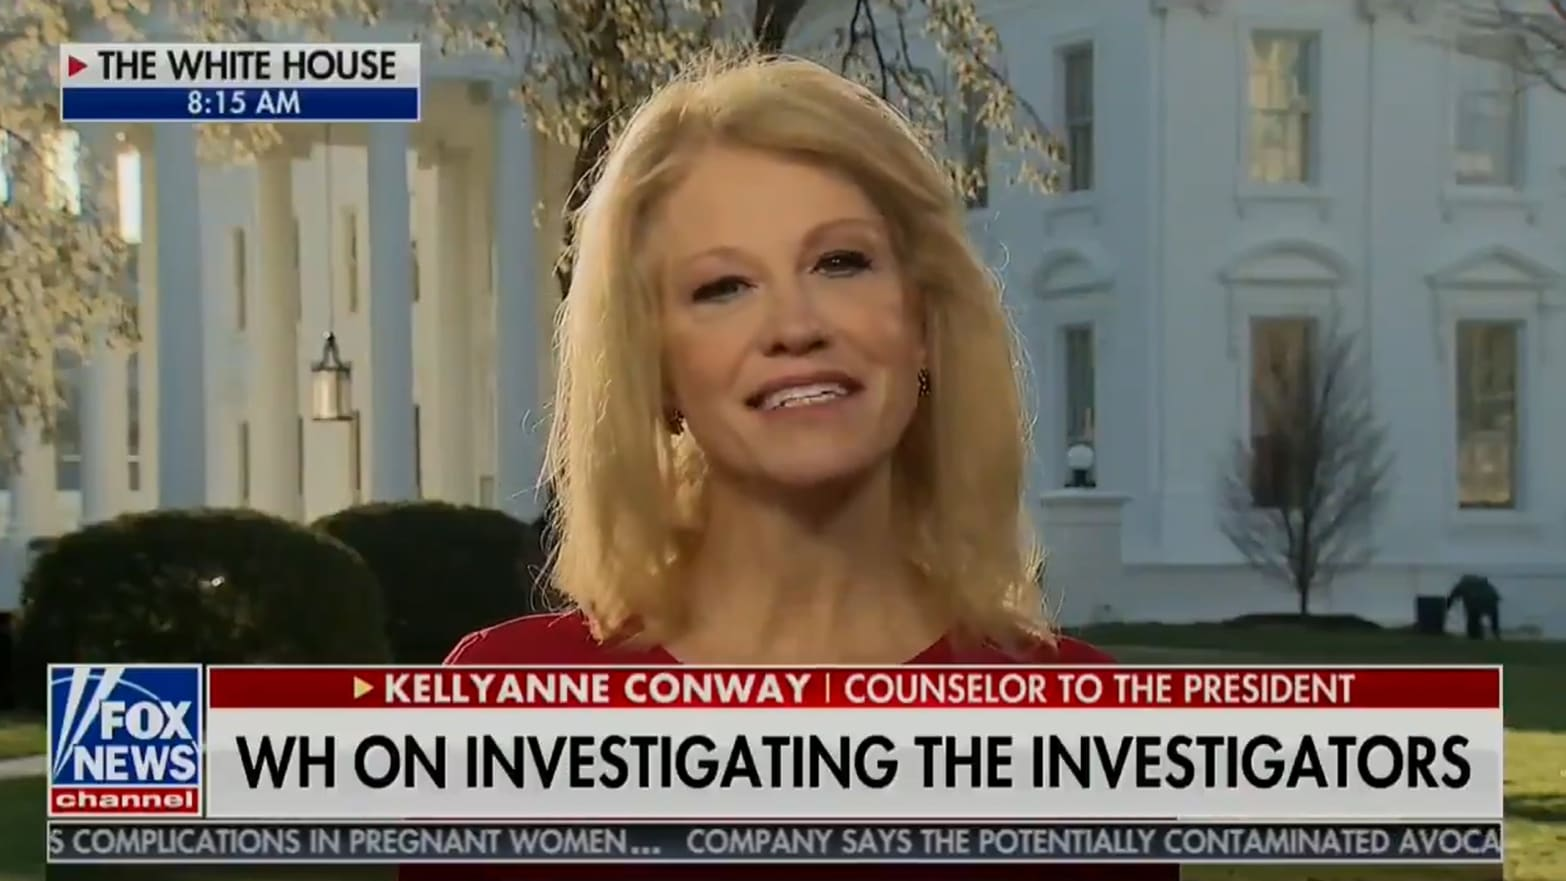 Kellyanne Conway to Rep. Adam Schiff: You 'Ought to Resign Today' Over Collusion Allegations